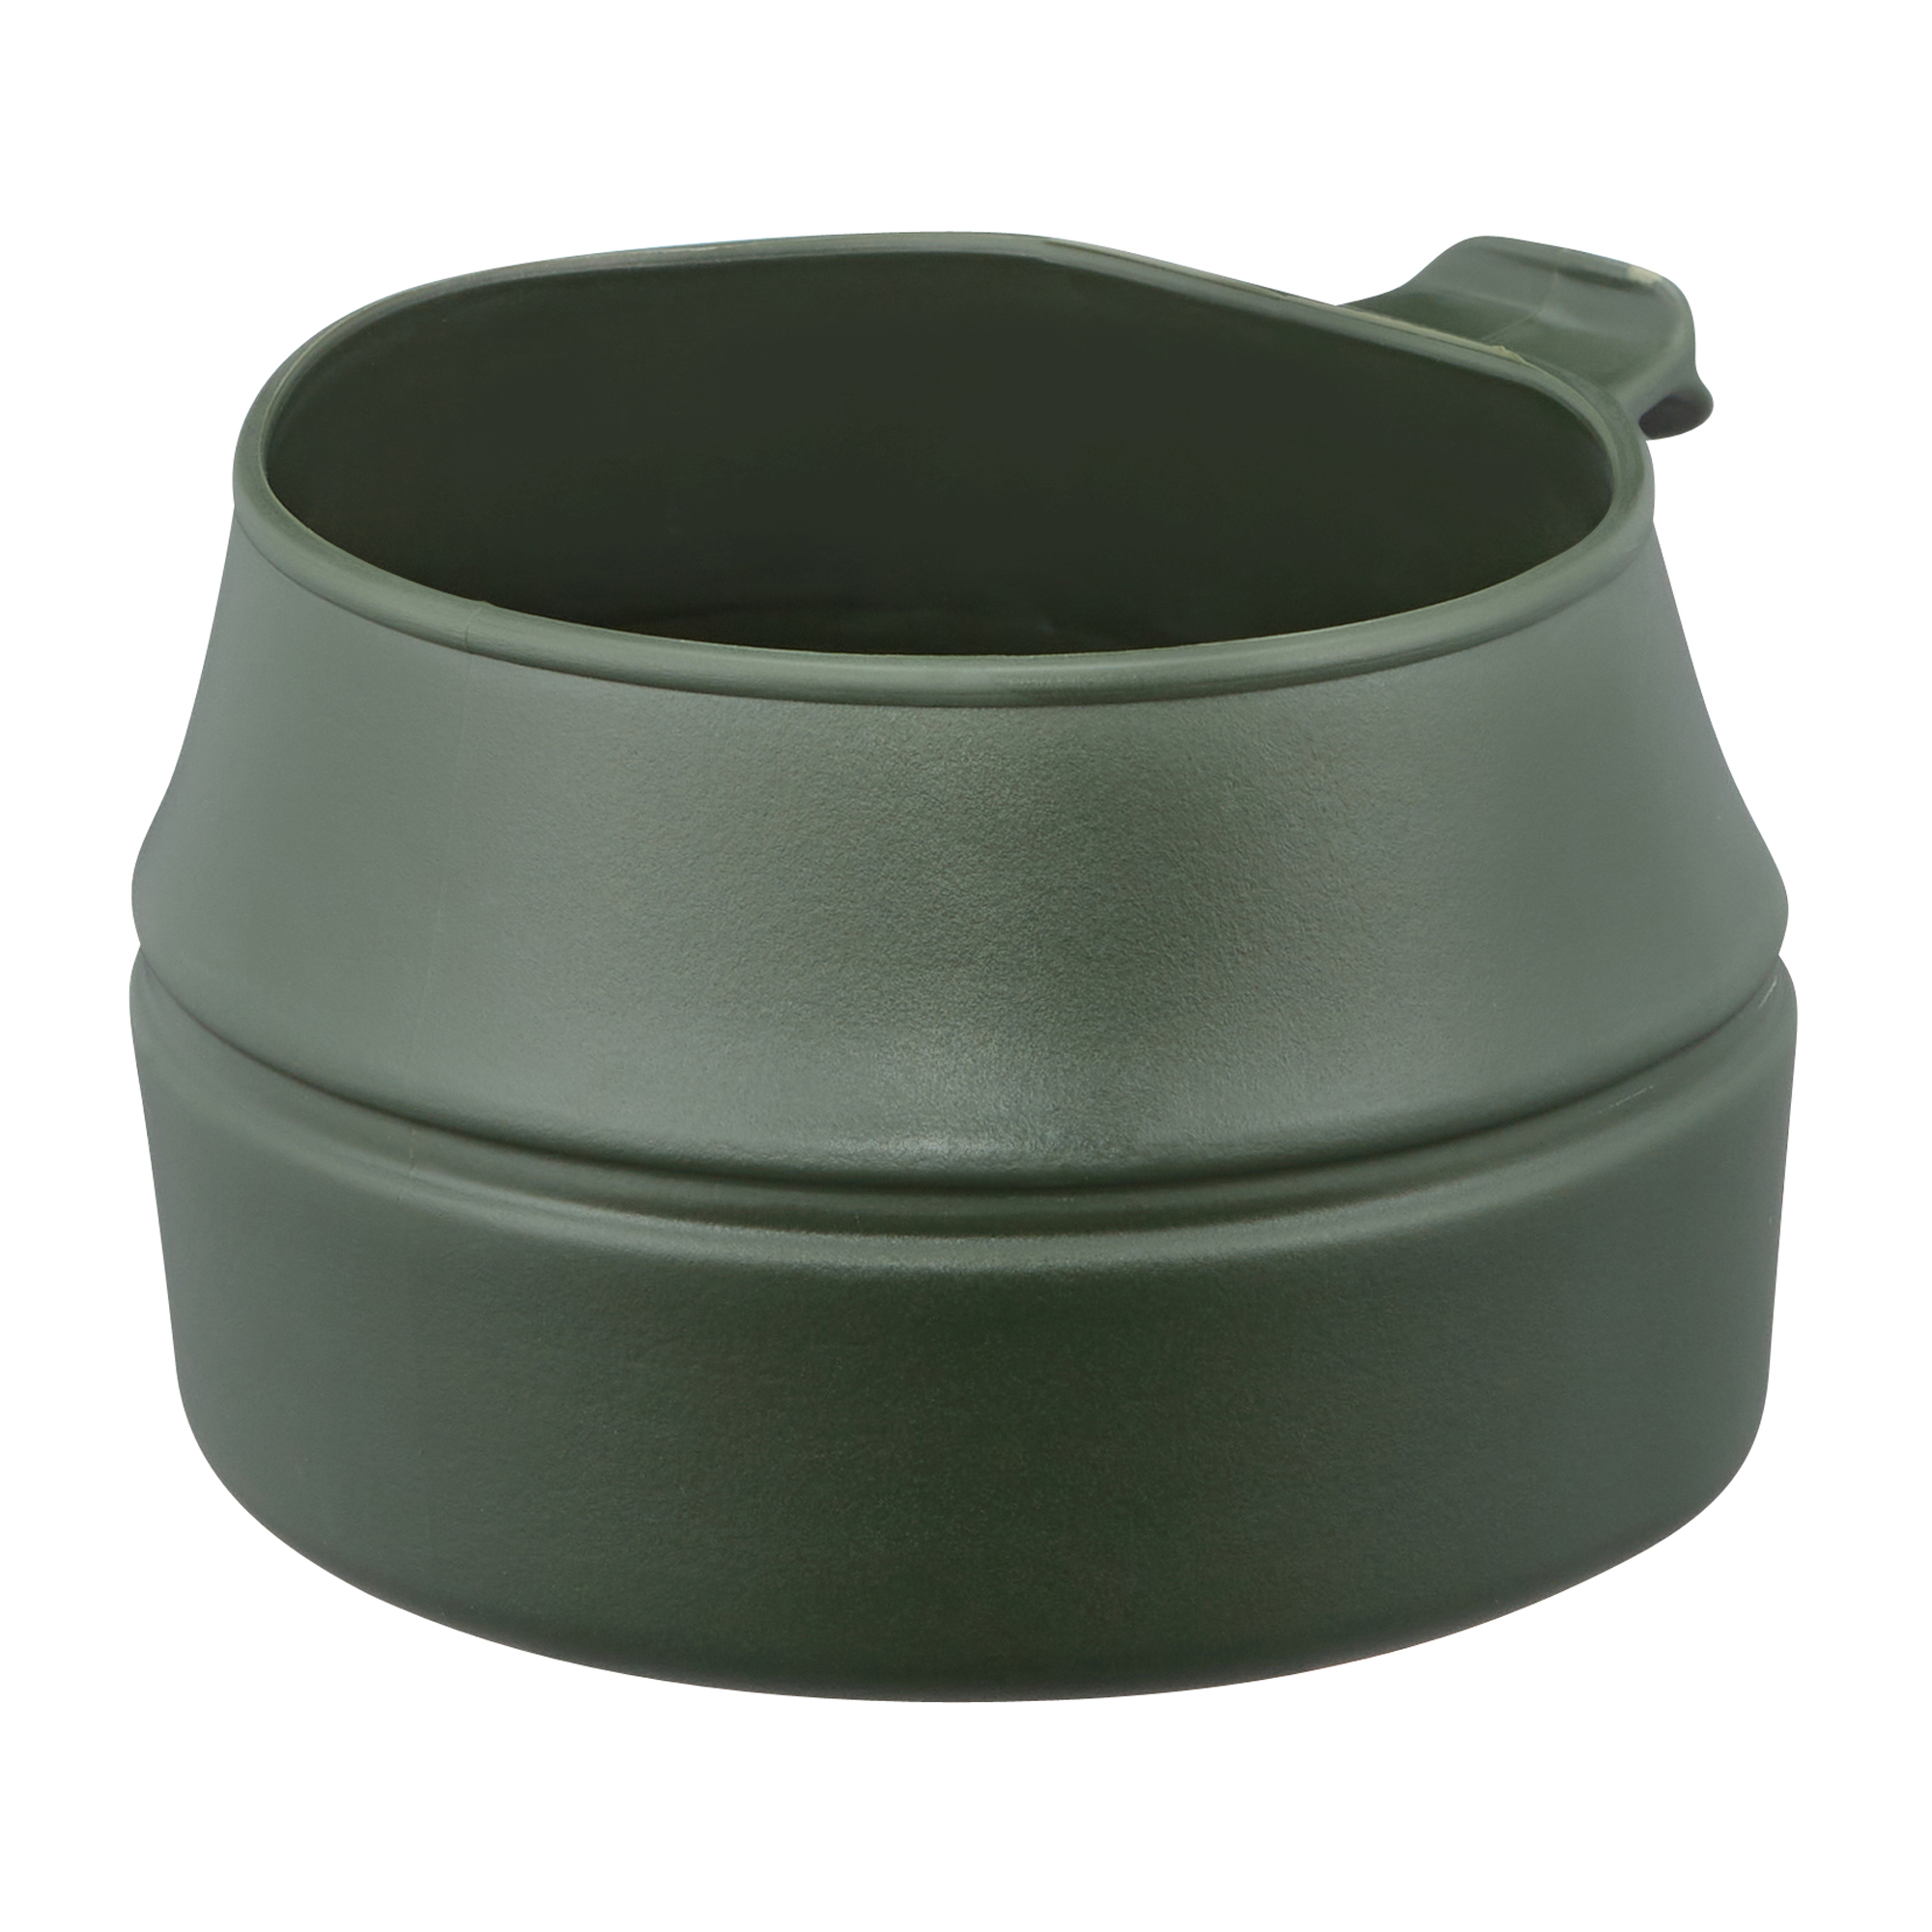 Folding Cup Fold-A-Cup olive